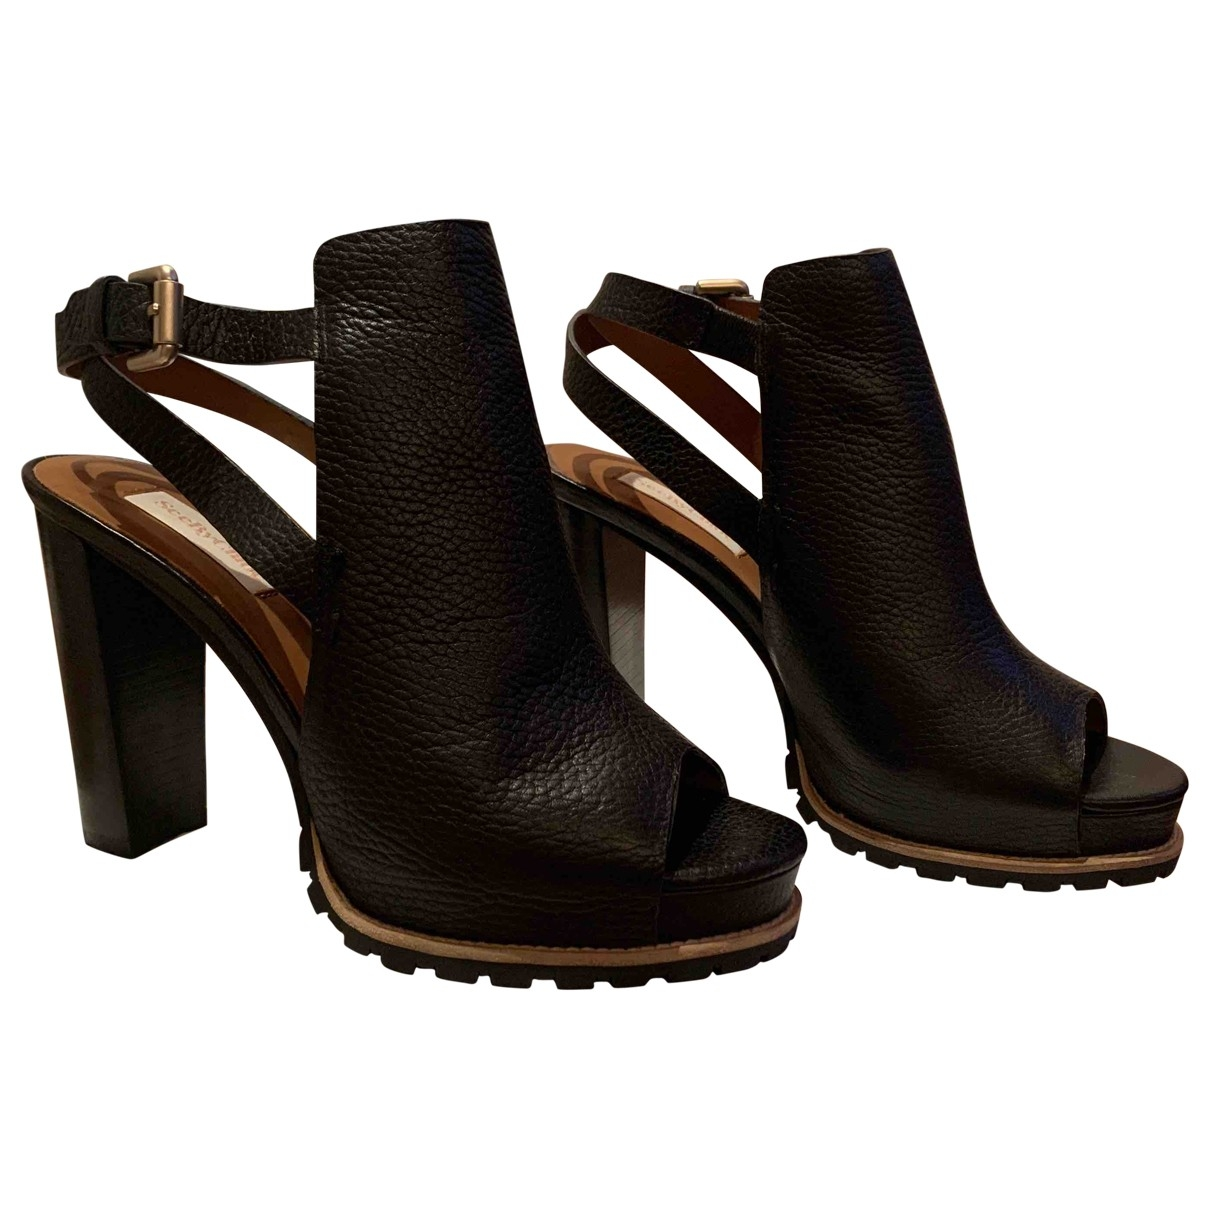 See By Chloé \N Black Leather Mules & Clogs for Women 38 EU